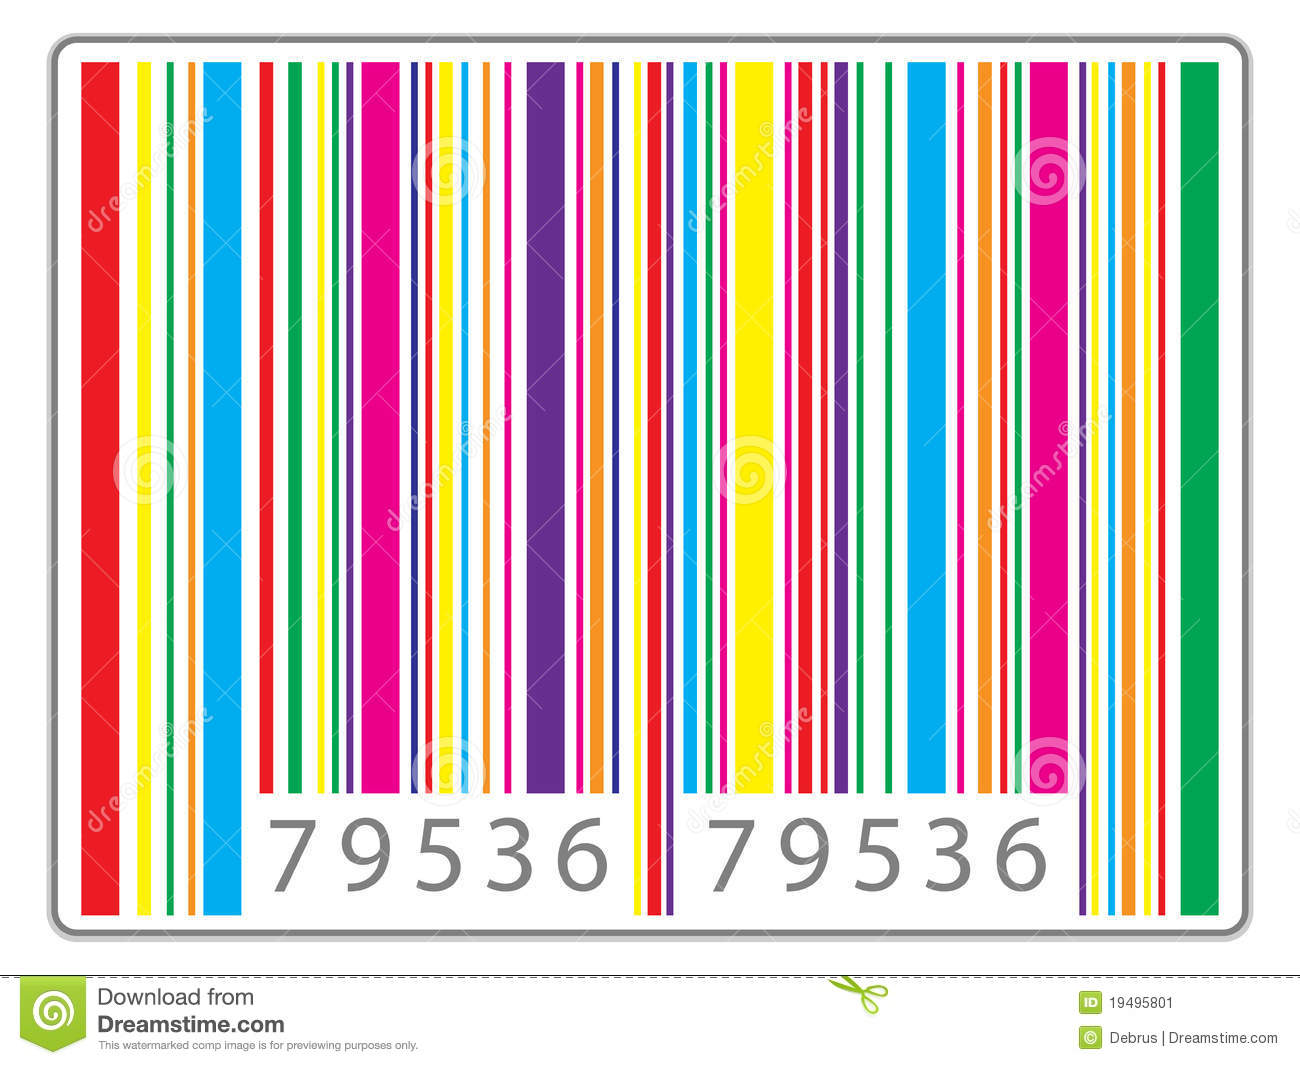 Fereditions31 Codigos De Barra Png: Multi Colored Barcode Stock Vector. Illustration Of Multi